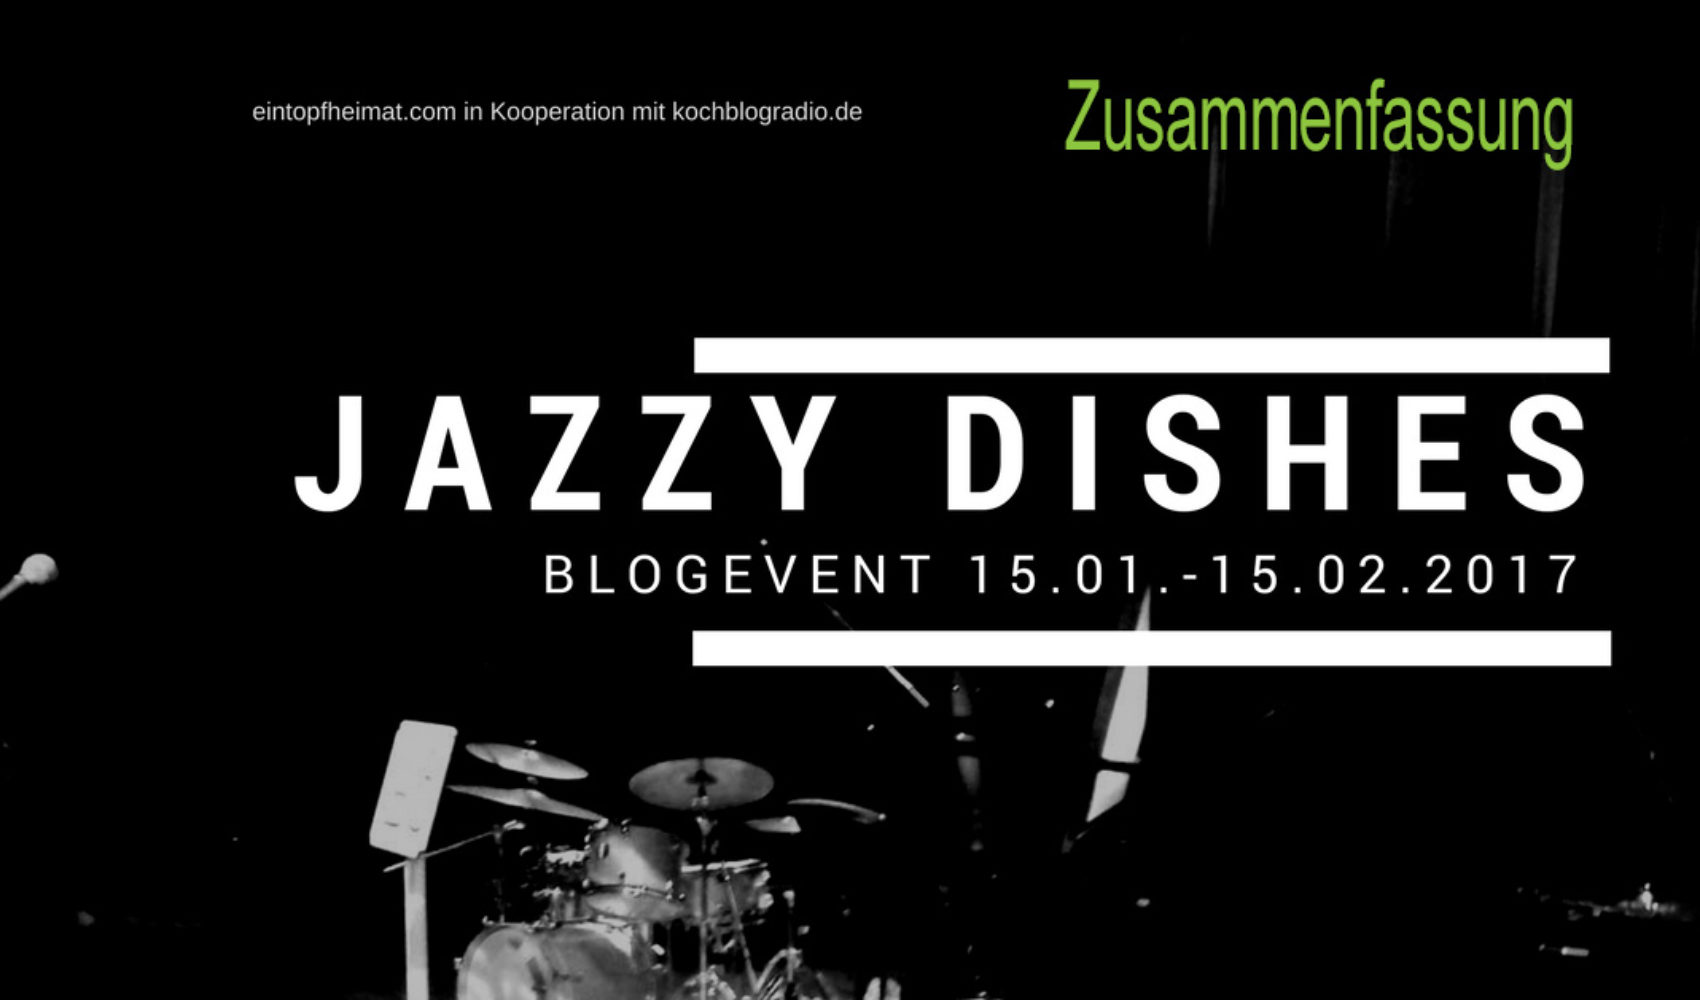 Blogevent Jazzy Dishes - Zusammenfassung